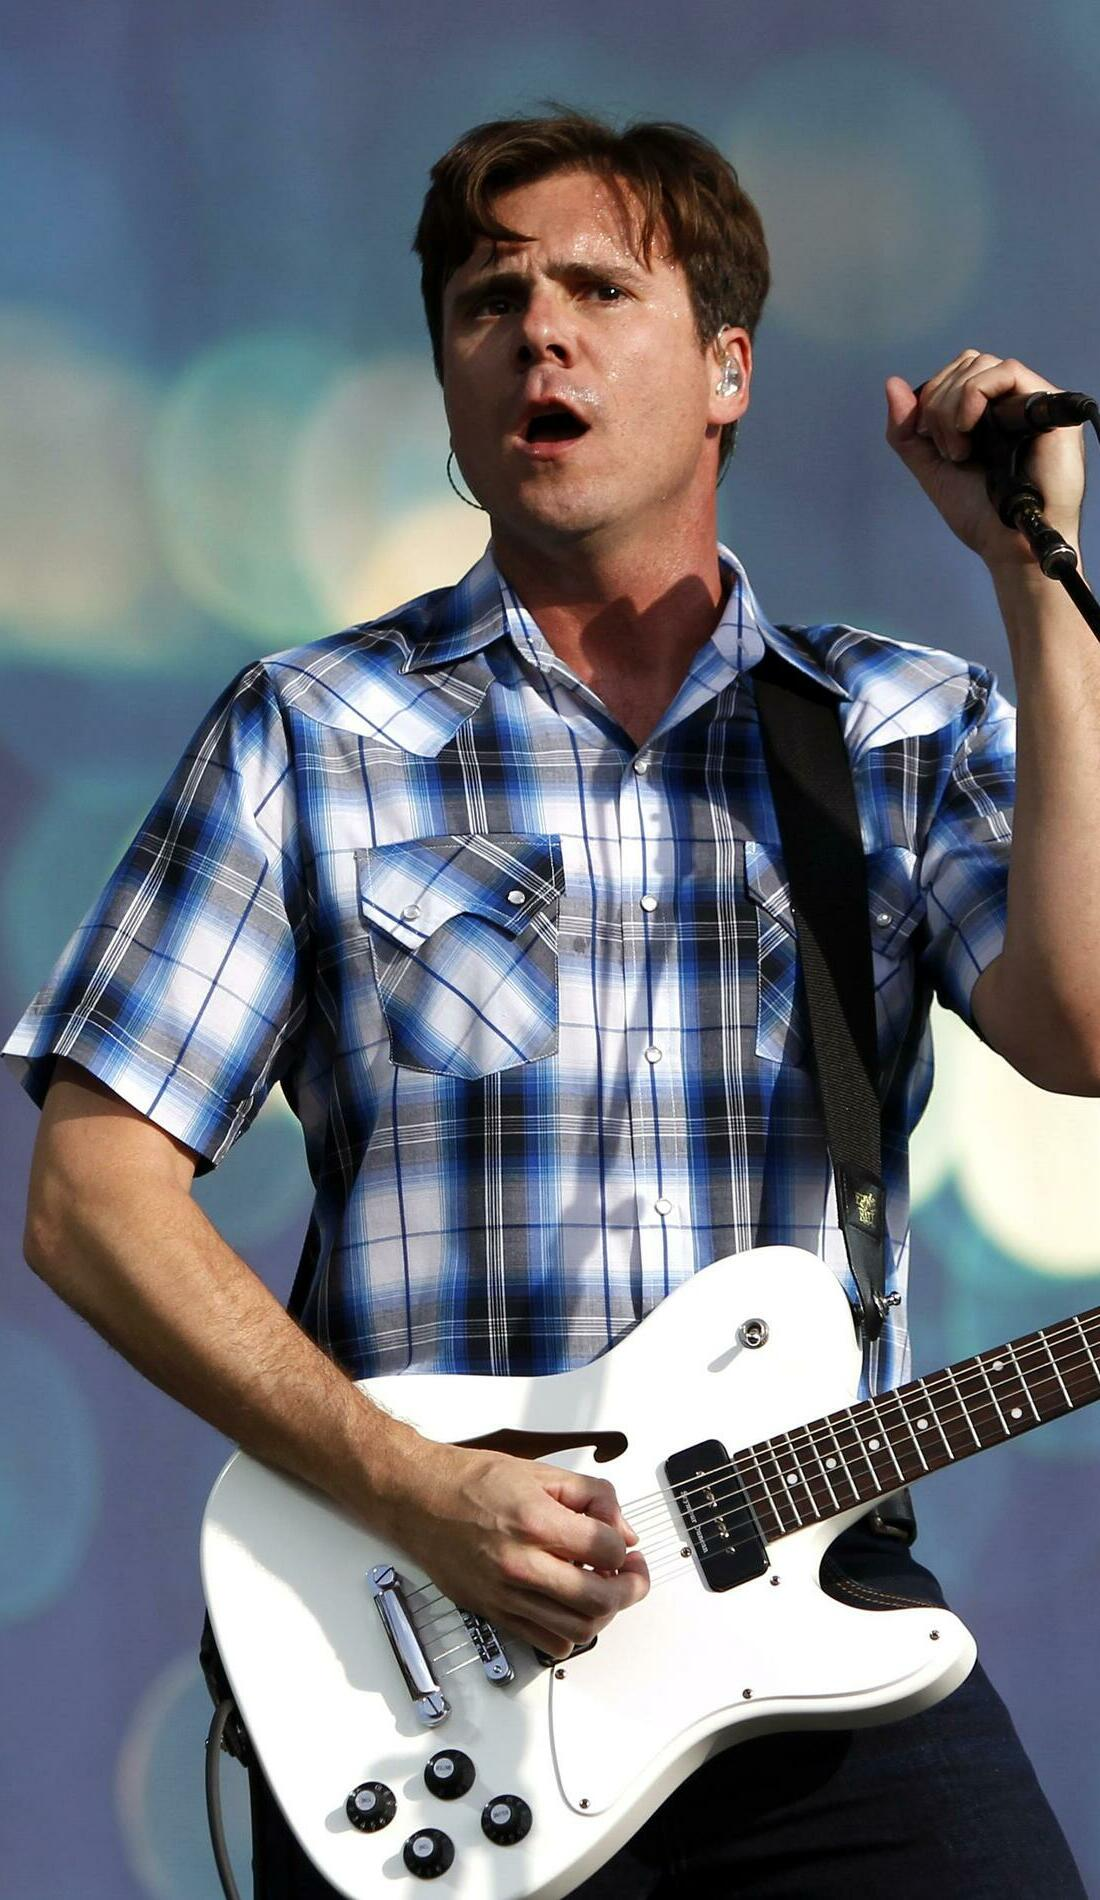 A Jimmy Eat World live event